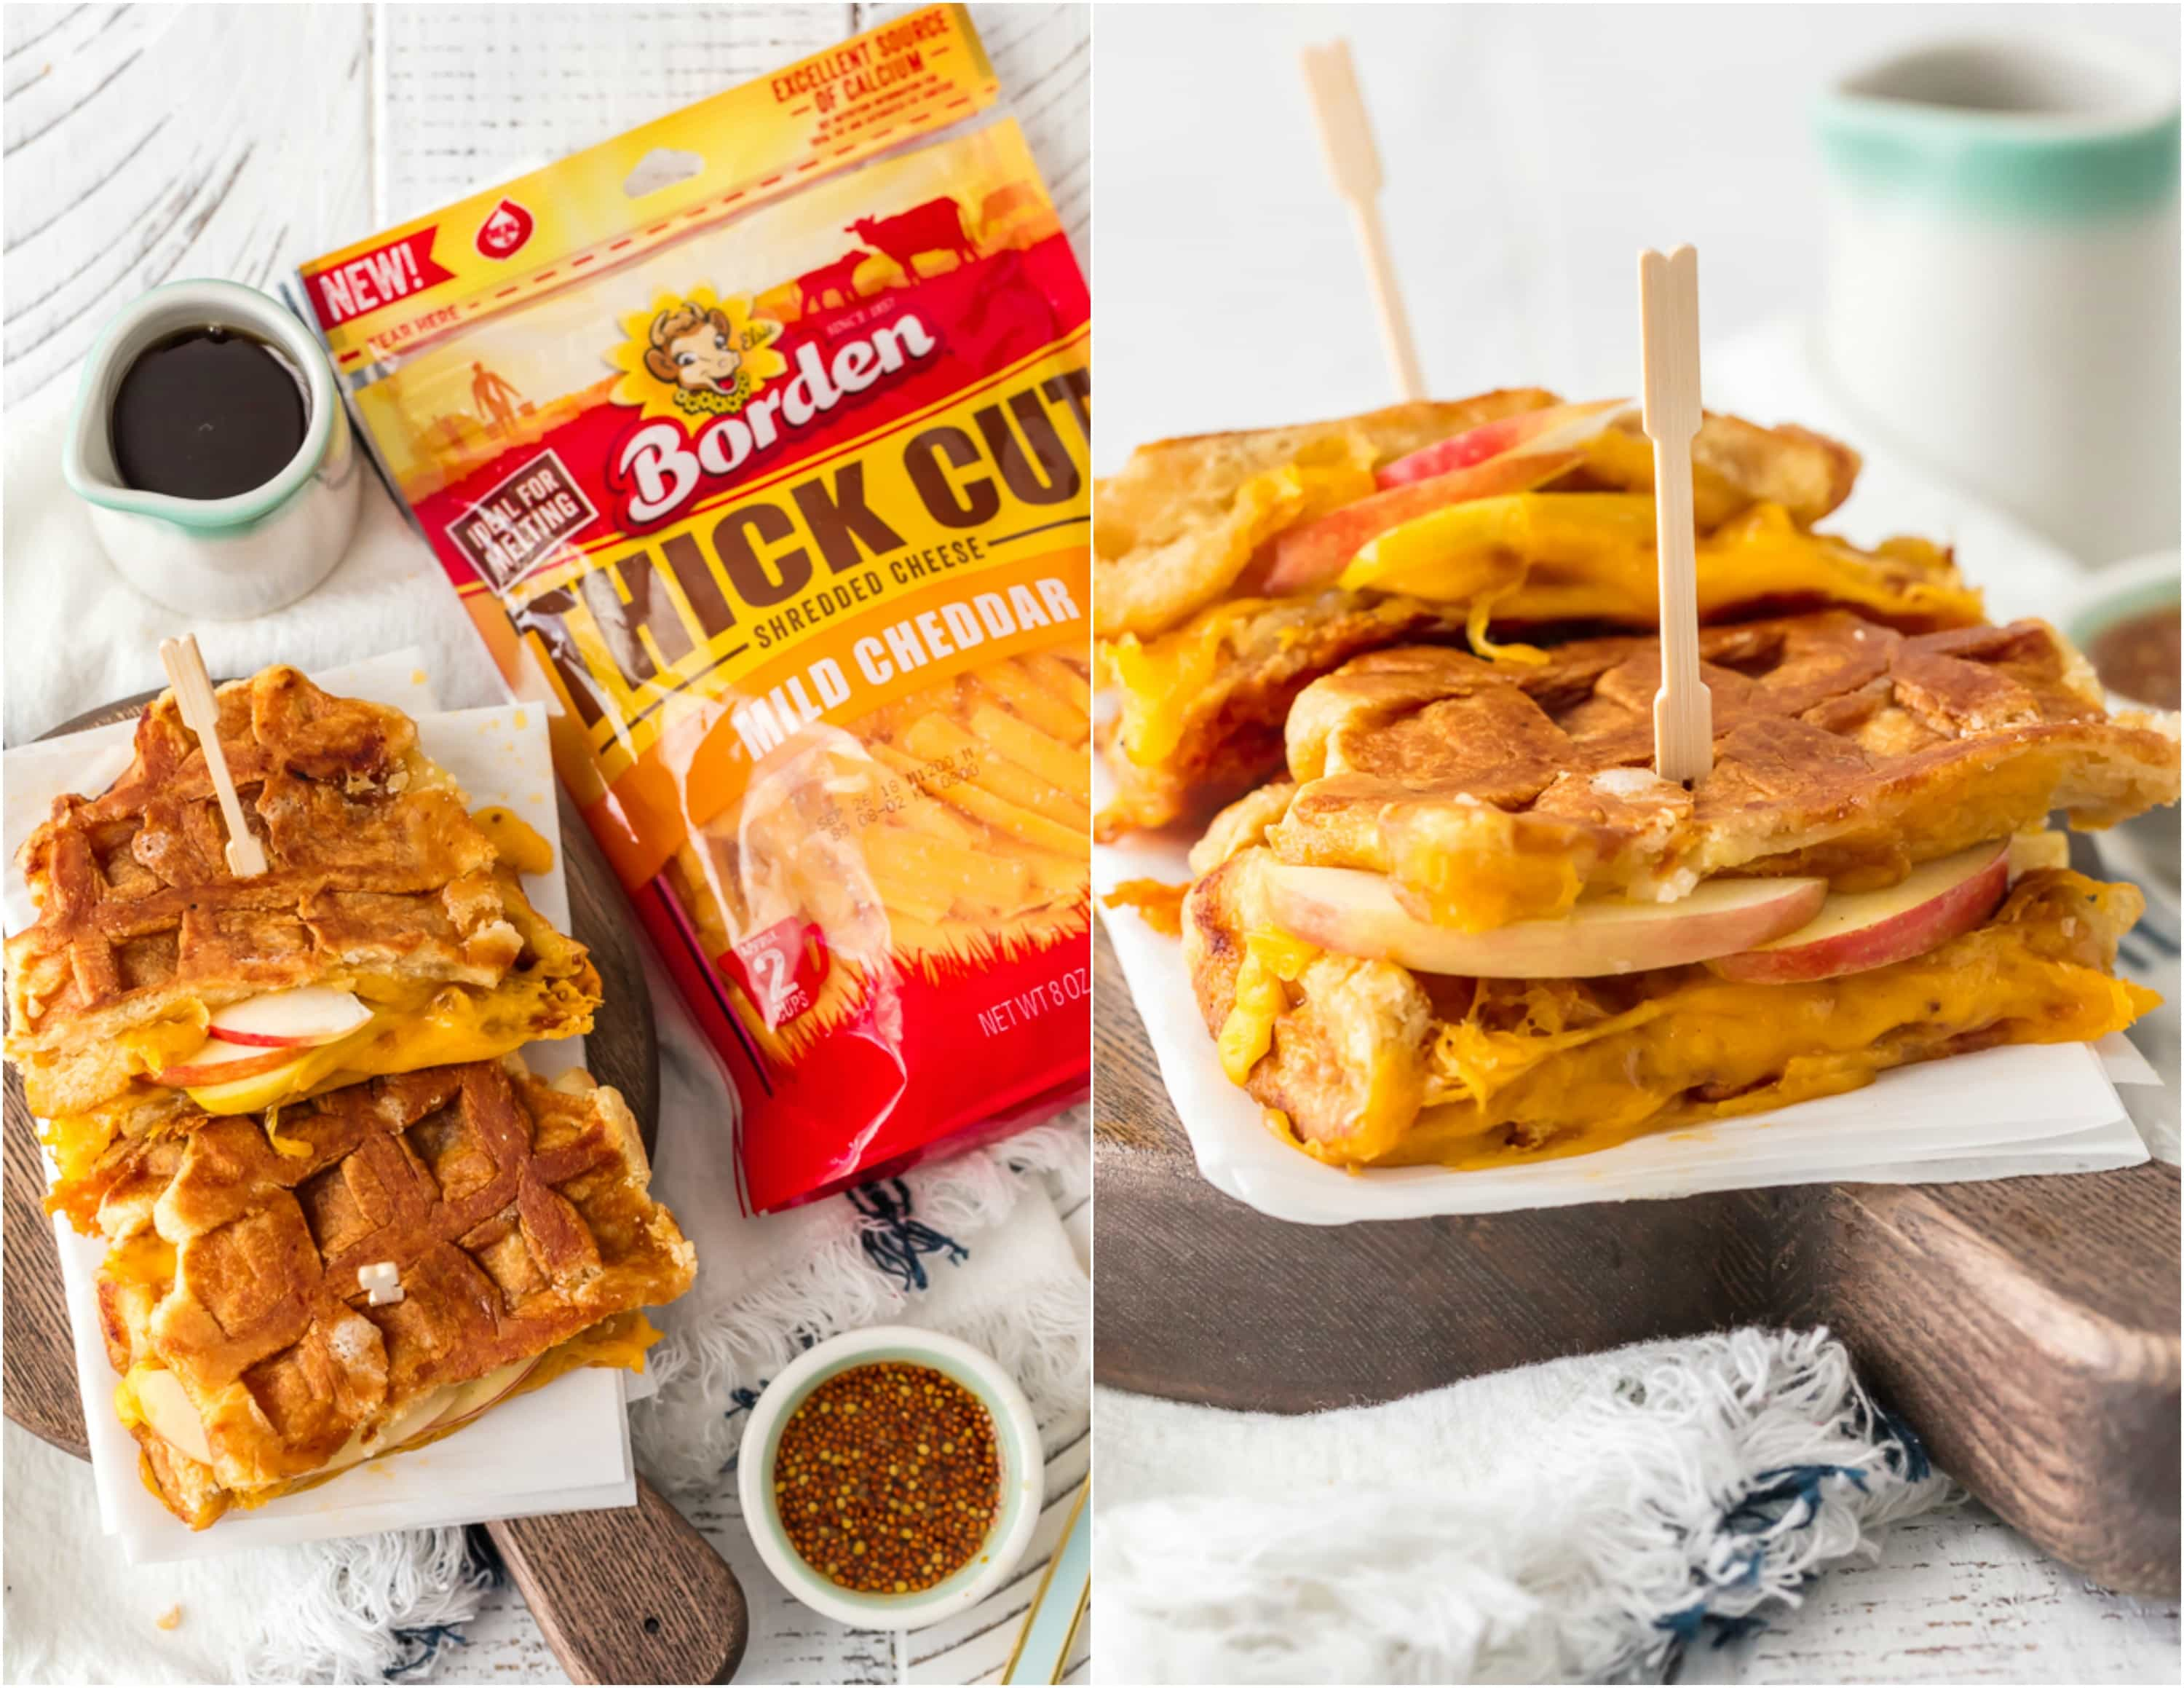 This Apple Cheddar Waffle Sandwich is a fun and easy Waffle Grilled Cheese recipe with only 5 ingredients! The simple flavors of the maple dijon sauce blend perfectly with the creamy cheddar, crisp apples, and sweet waffles. This is such an awesome brunch or lunch recipe that everyone in the family will crave again and again. Cheese lovers unite!